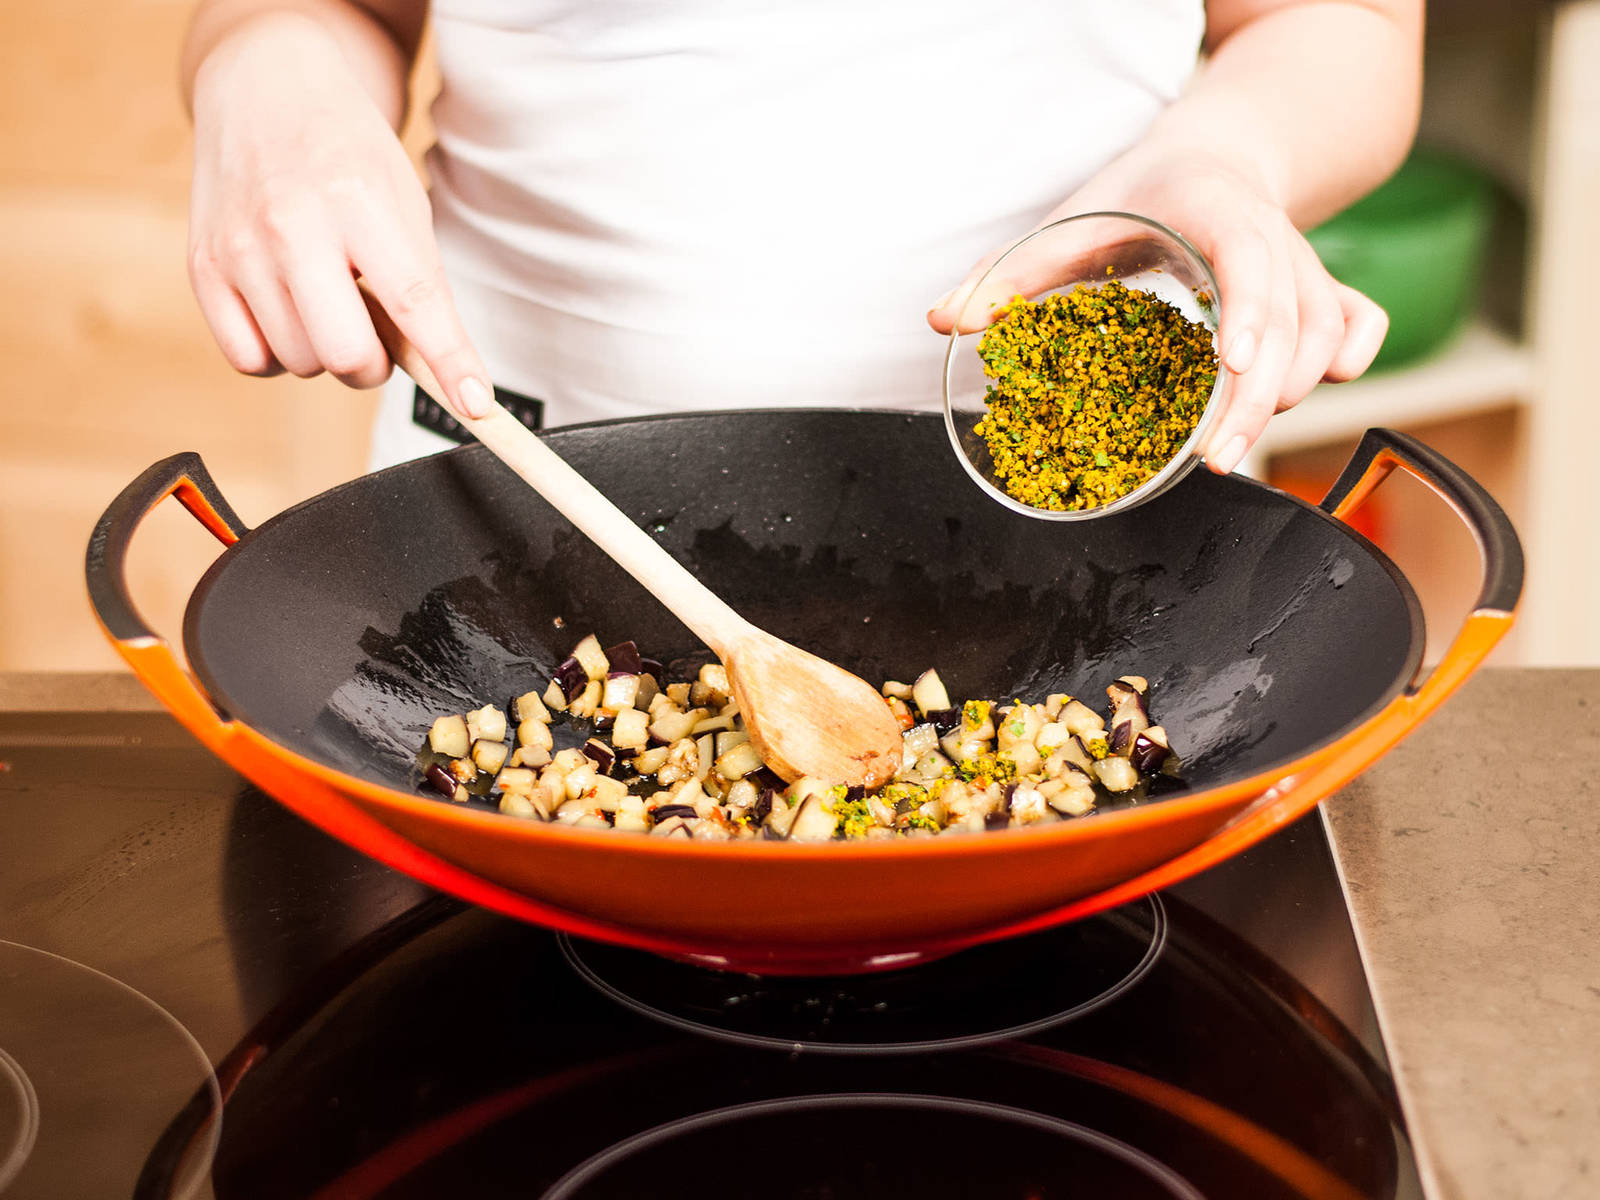 Add prepared curry paste and fry for approx. 2 – 3 min. to build intense flavor.